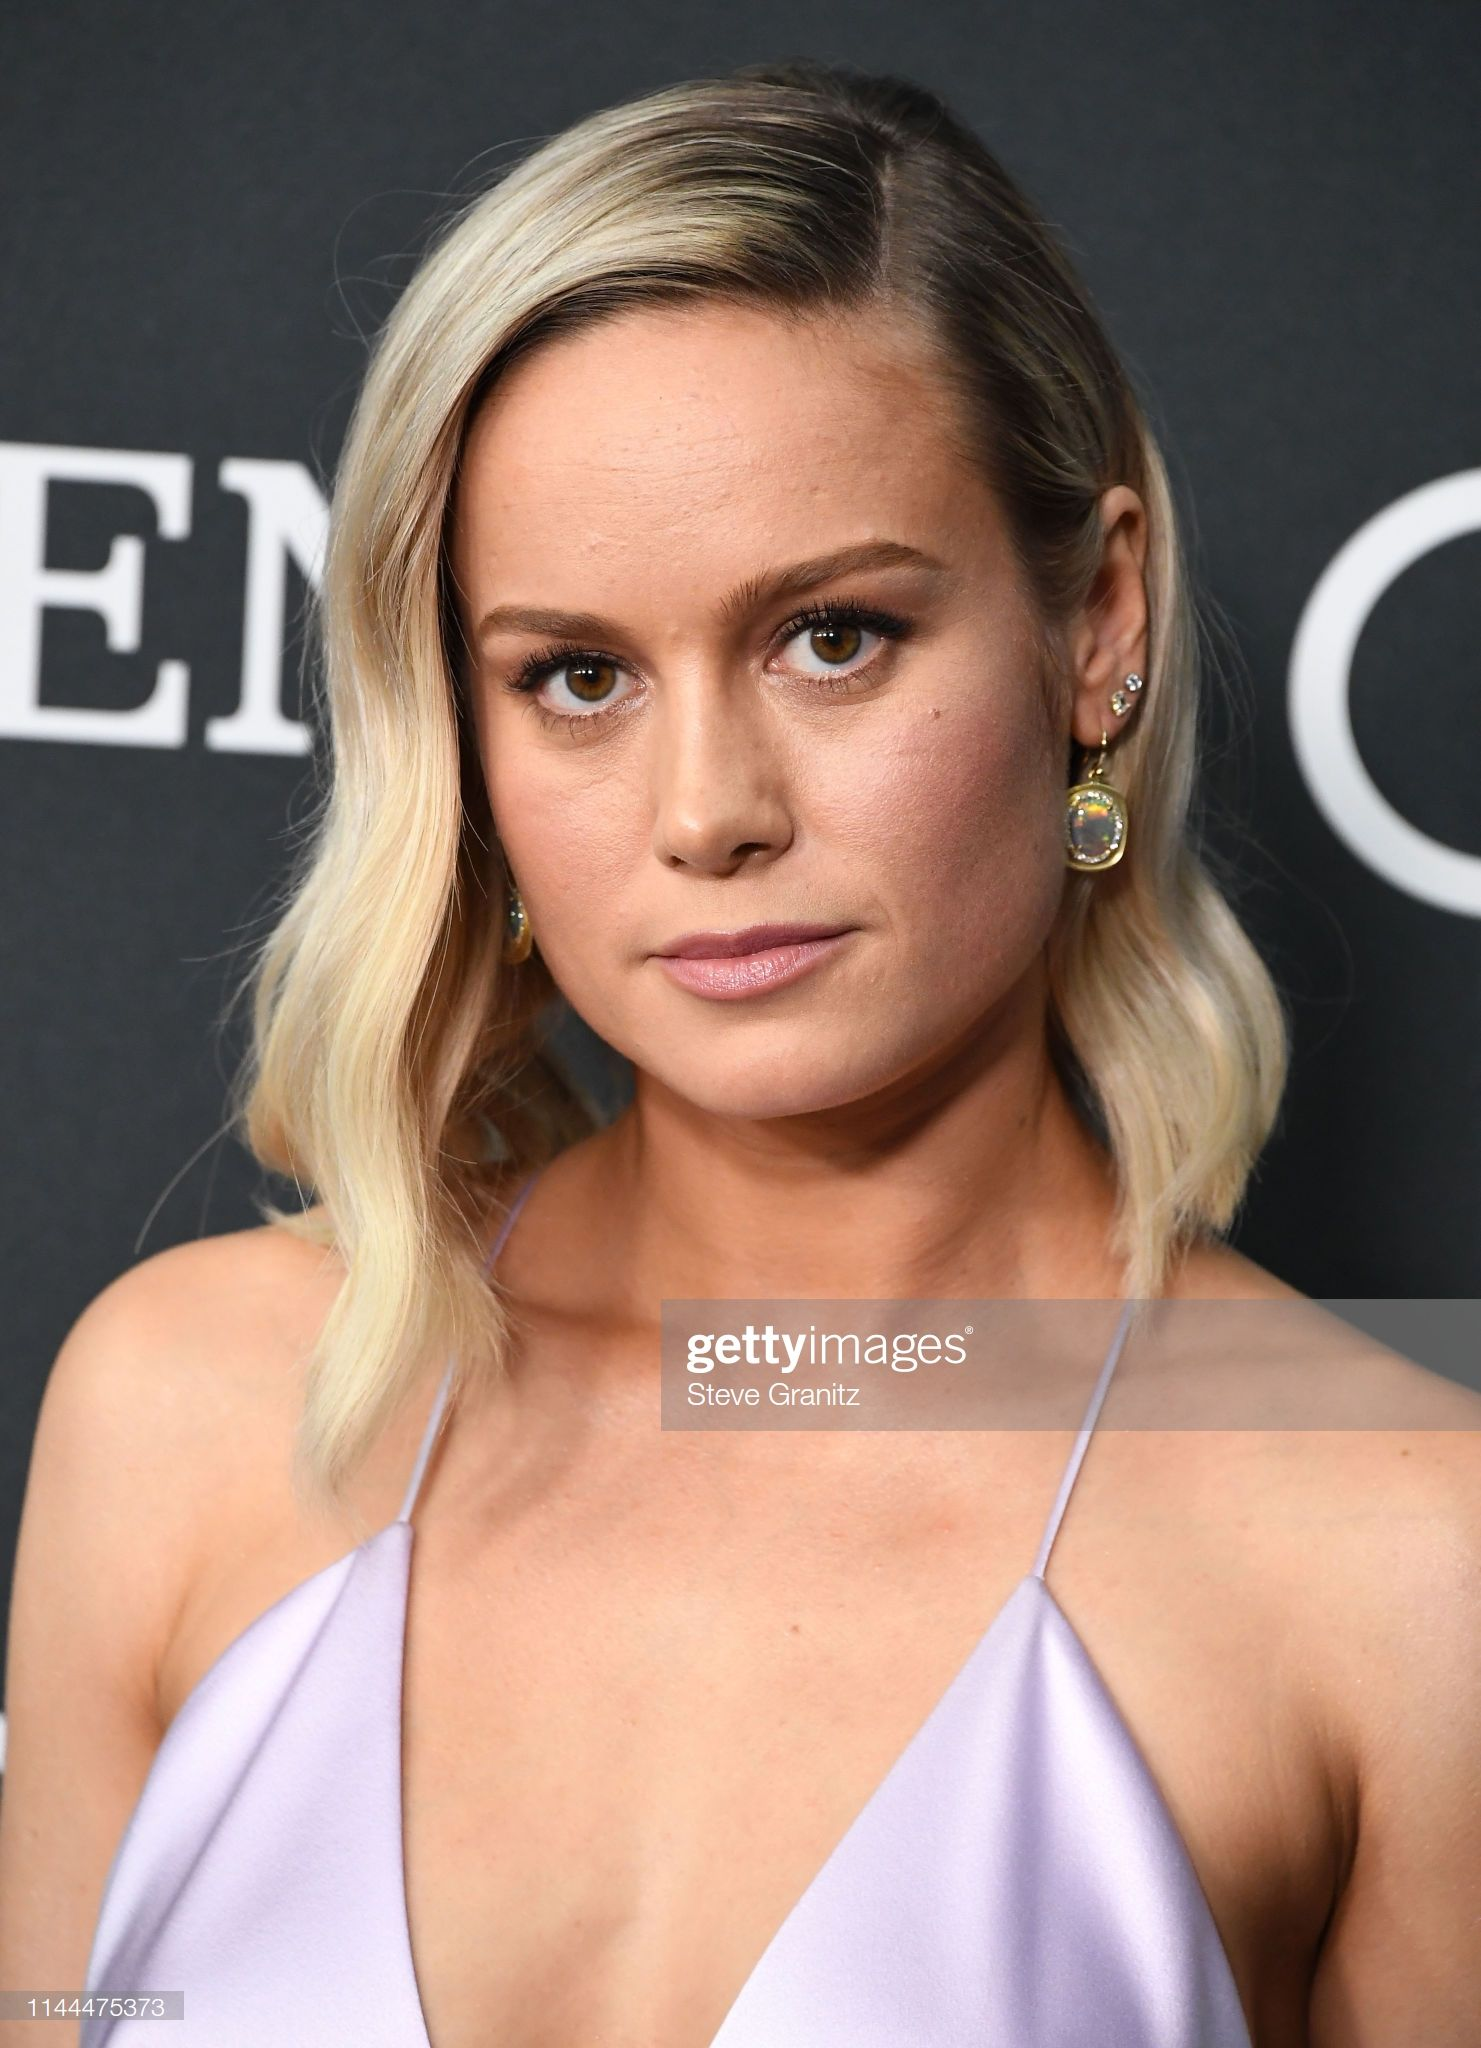 Pin By Madi On Brie Larson In 2020 Celebrity Haircuts Brie Larson Medium Length Hair Styles